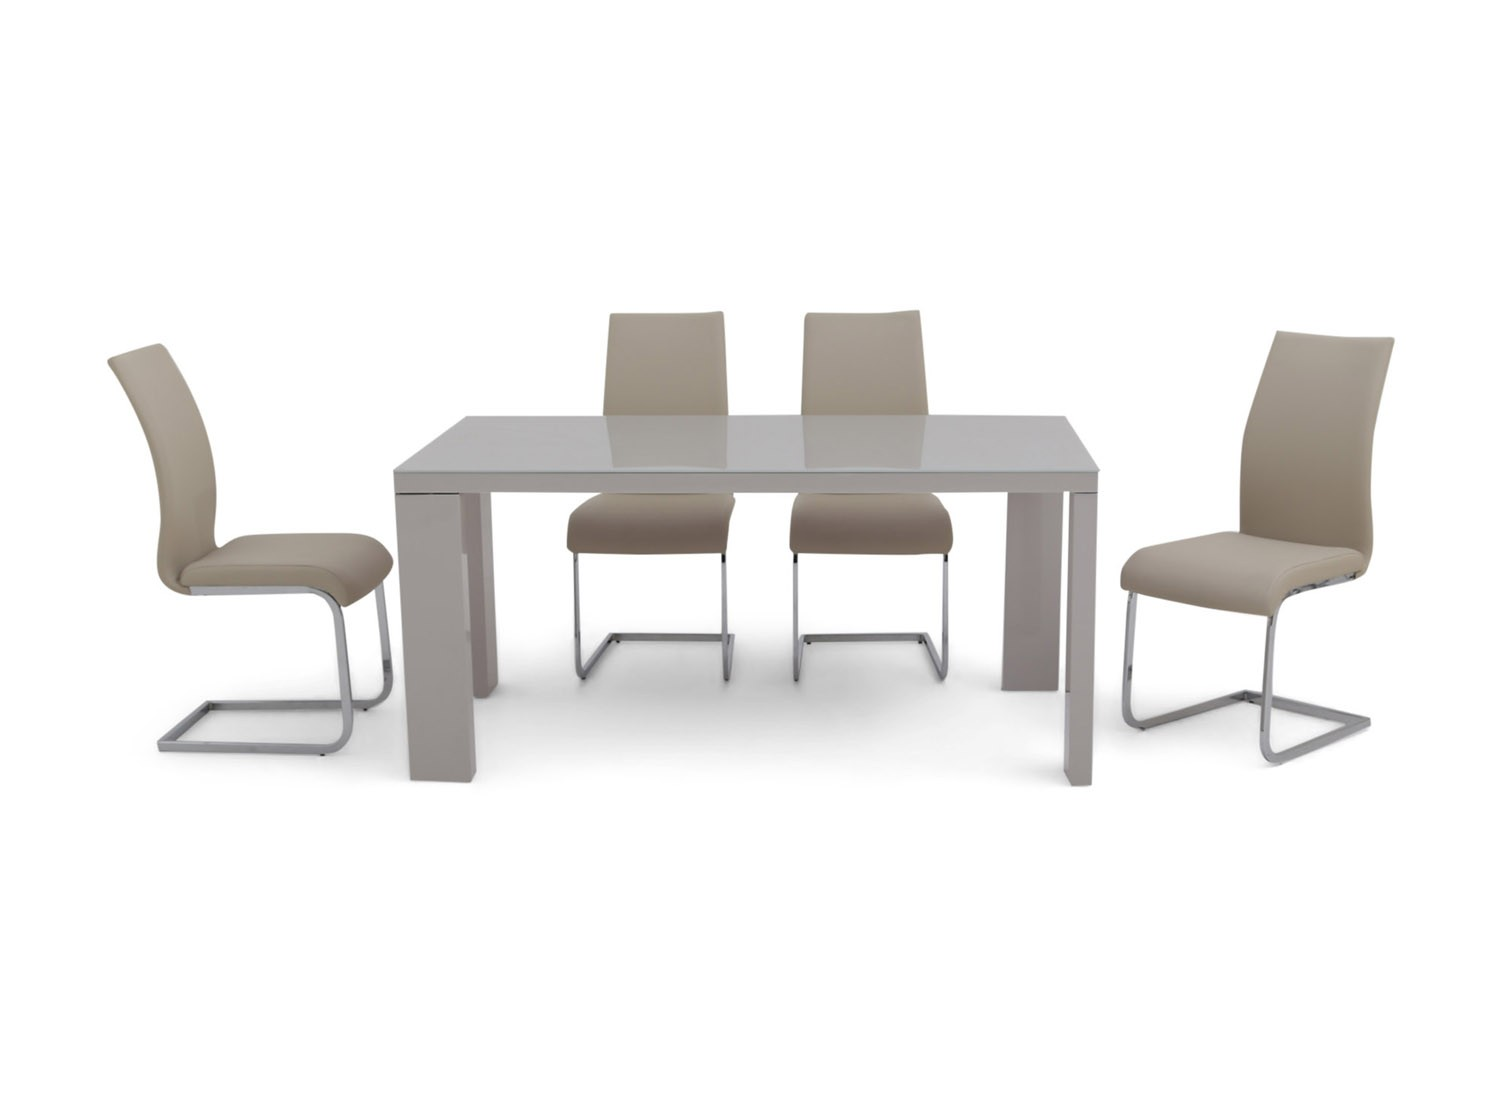 https://www.firstfurniture.co.uk/pub/media/catalog/product/f/a/fairmont_lucca_grey_high_gloss_dining_table_6_paolo_black_chairs_1.jpg